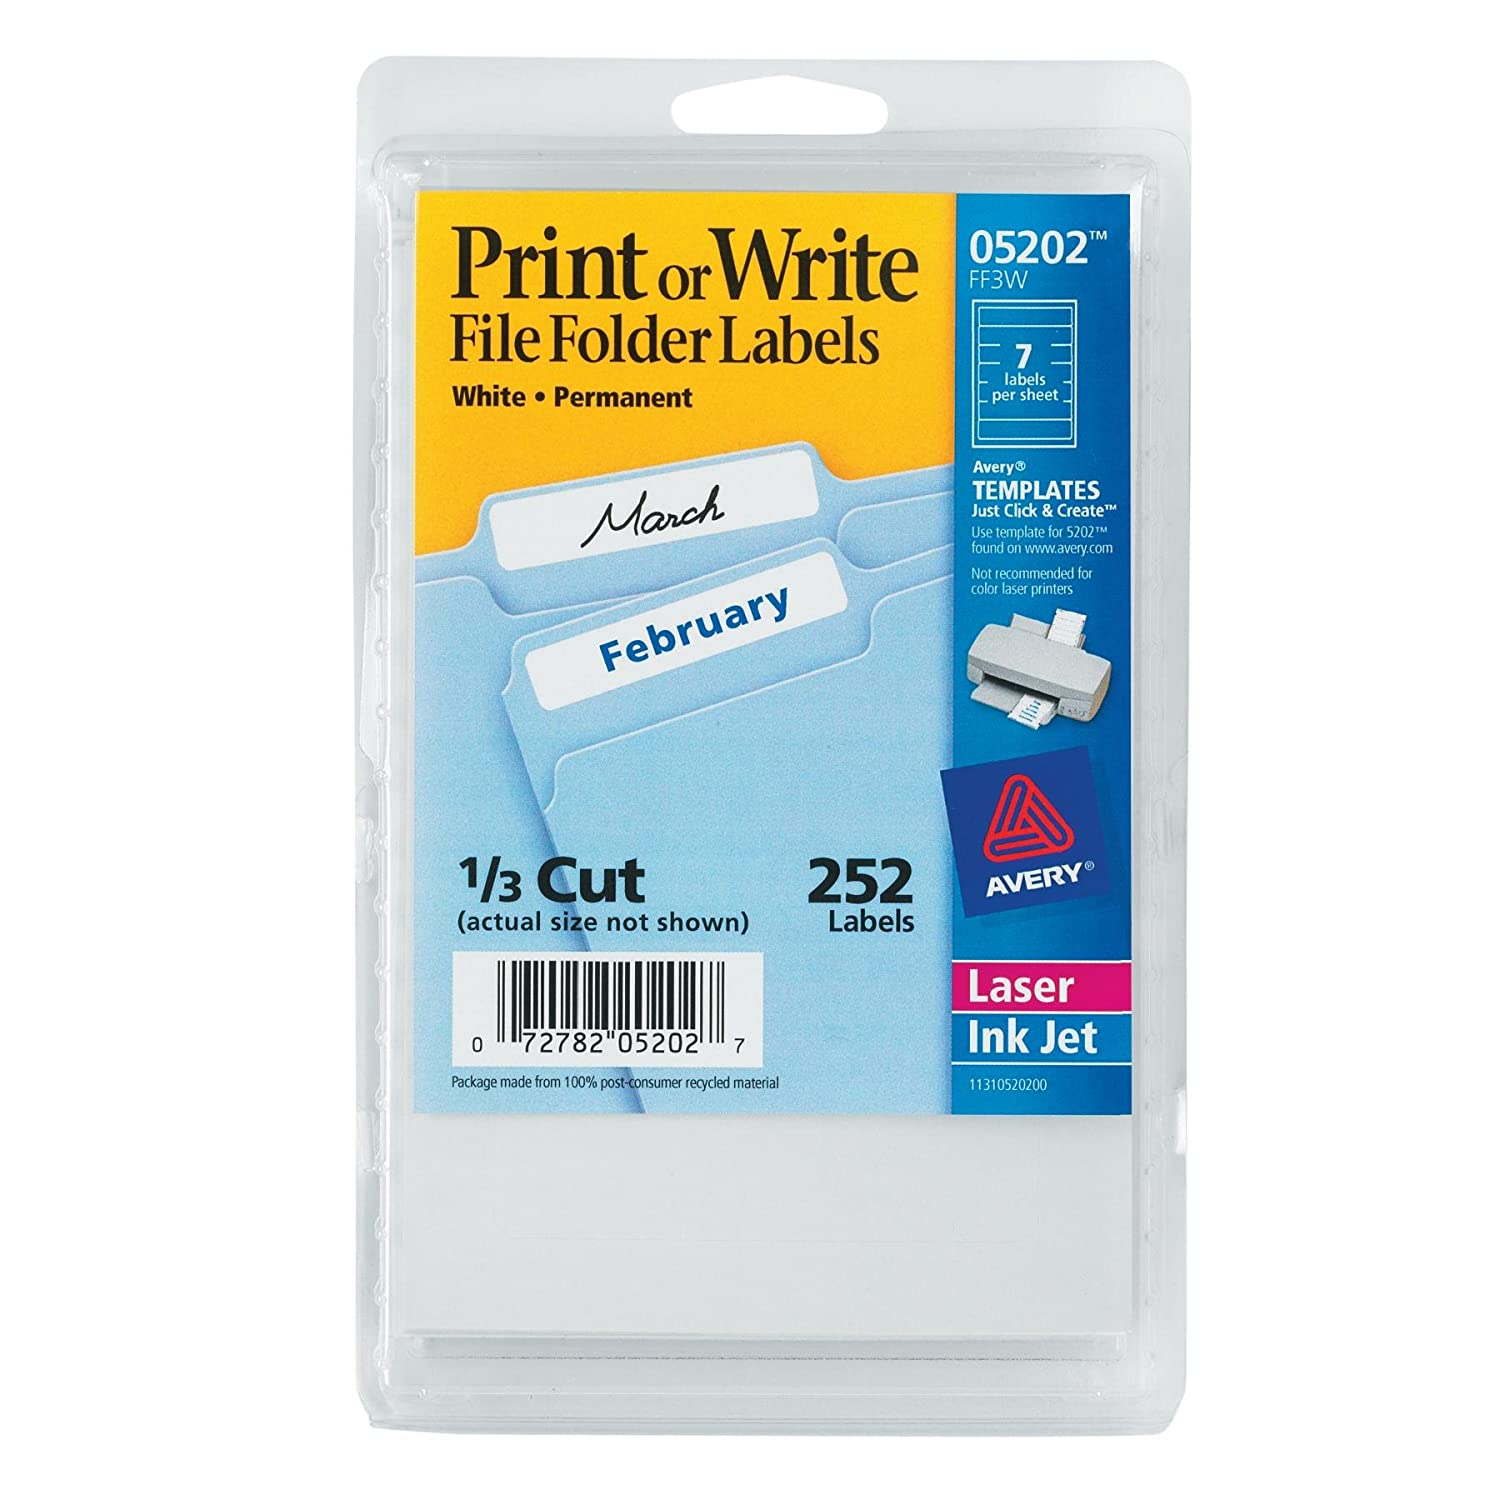 Avery File Folder Labels 252ct...